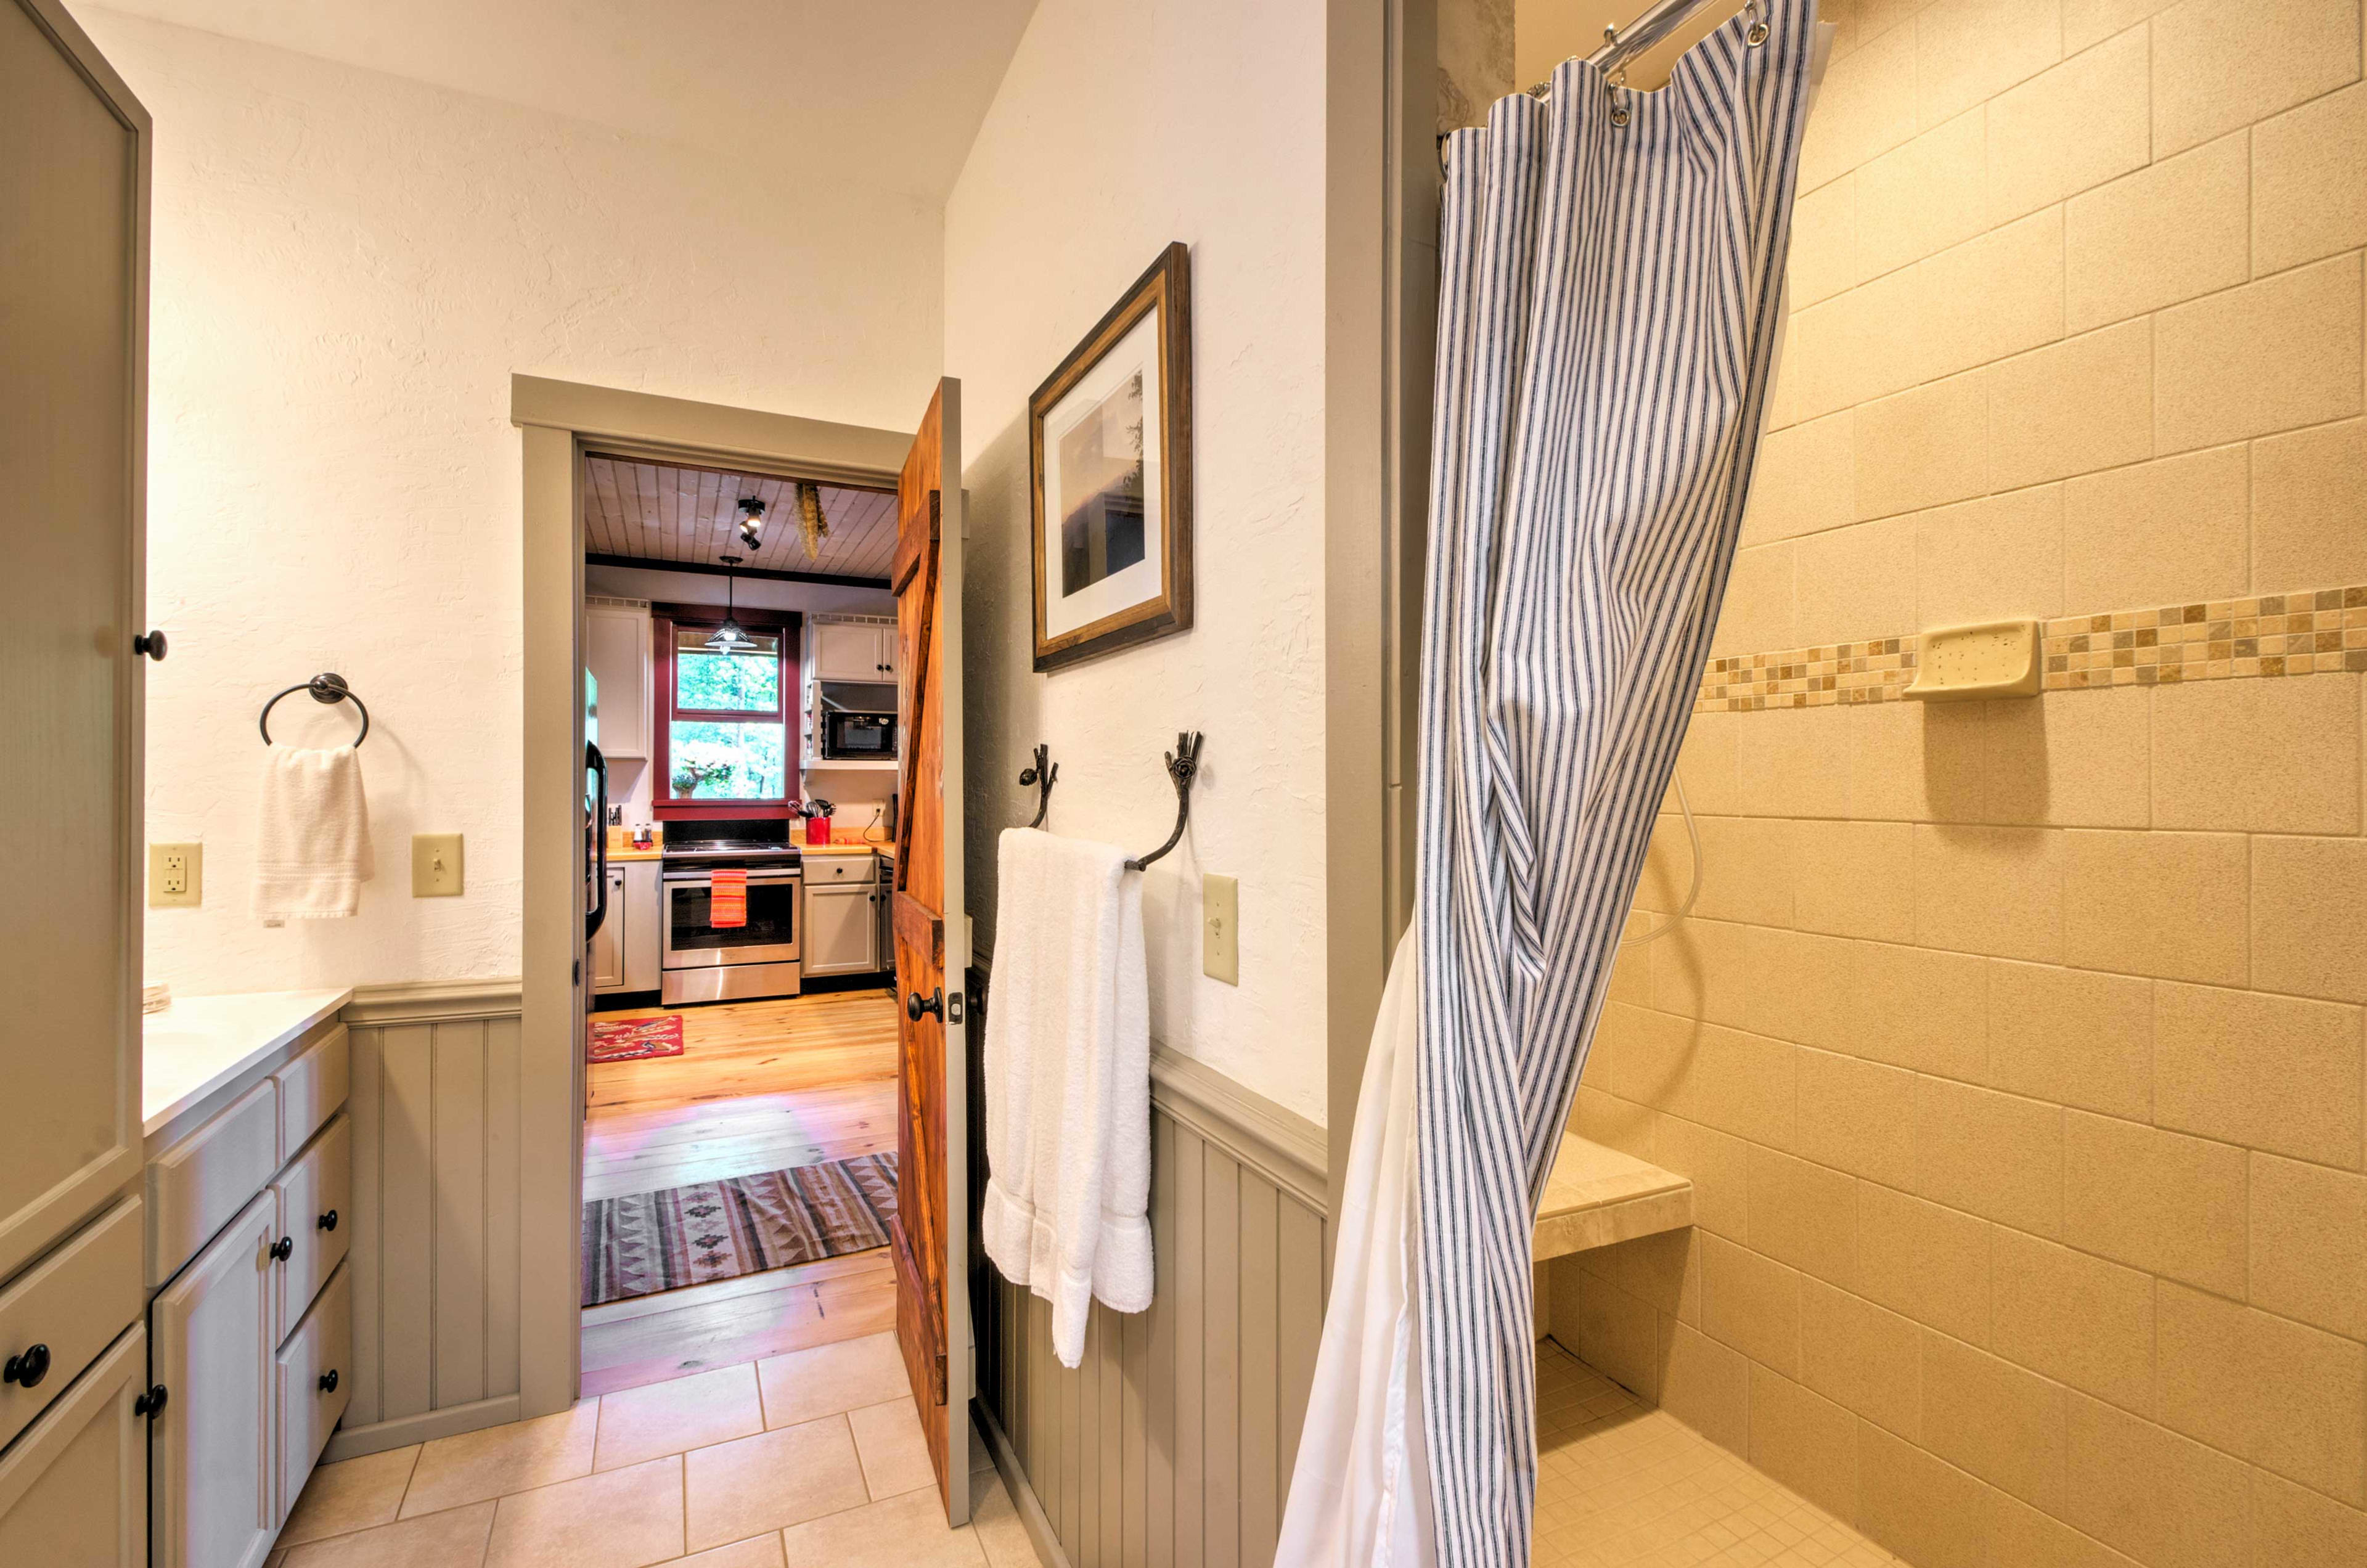 This large walk-in shower features a bench and 2 shower heads.